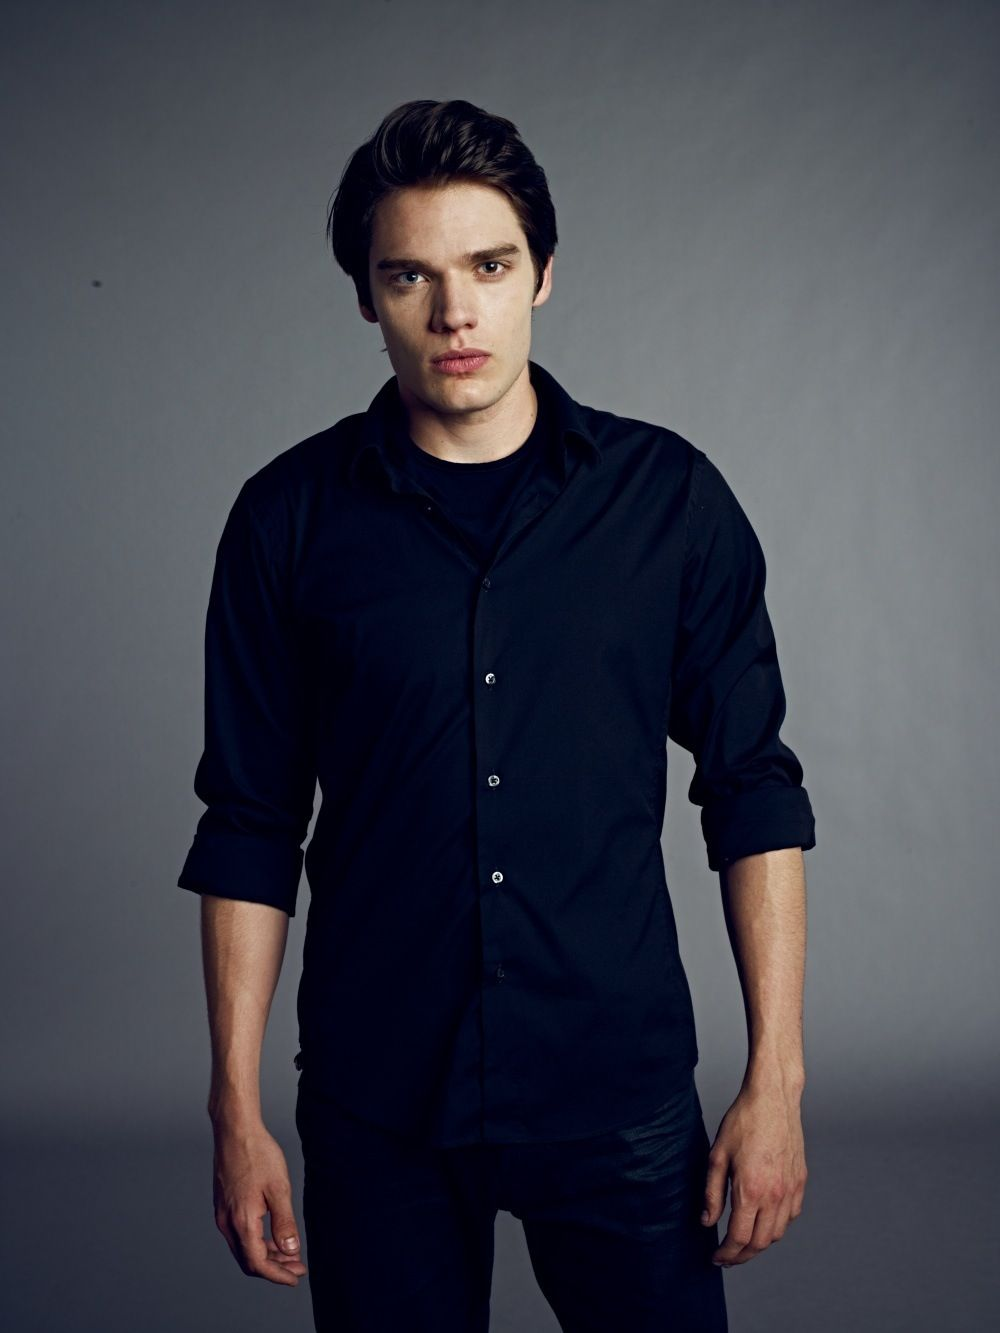 Image result for christian from vampire academy